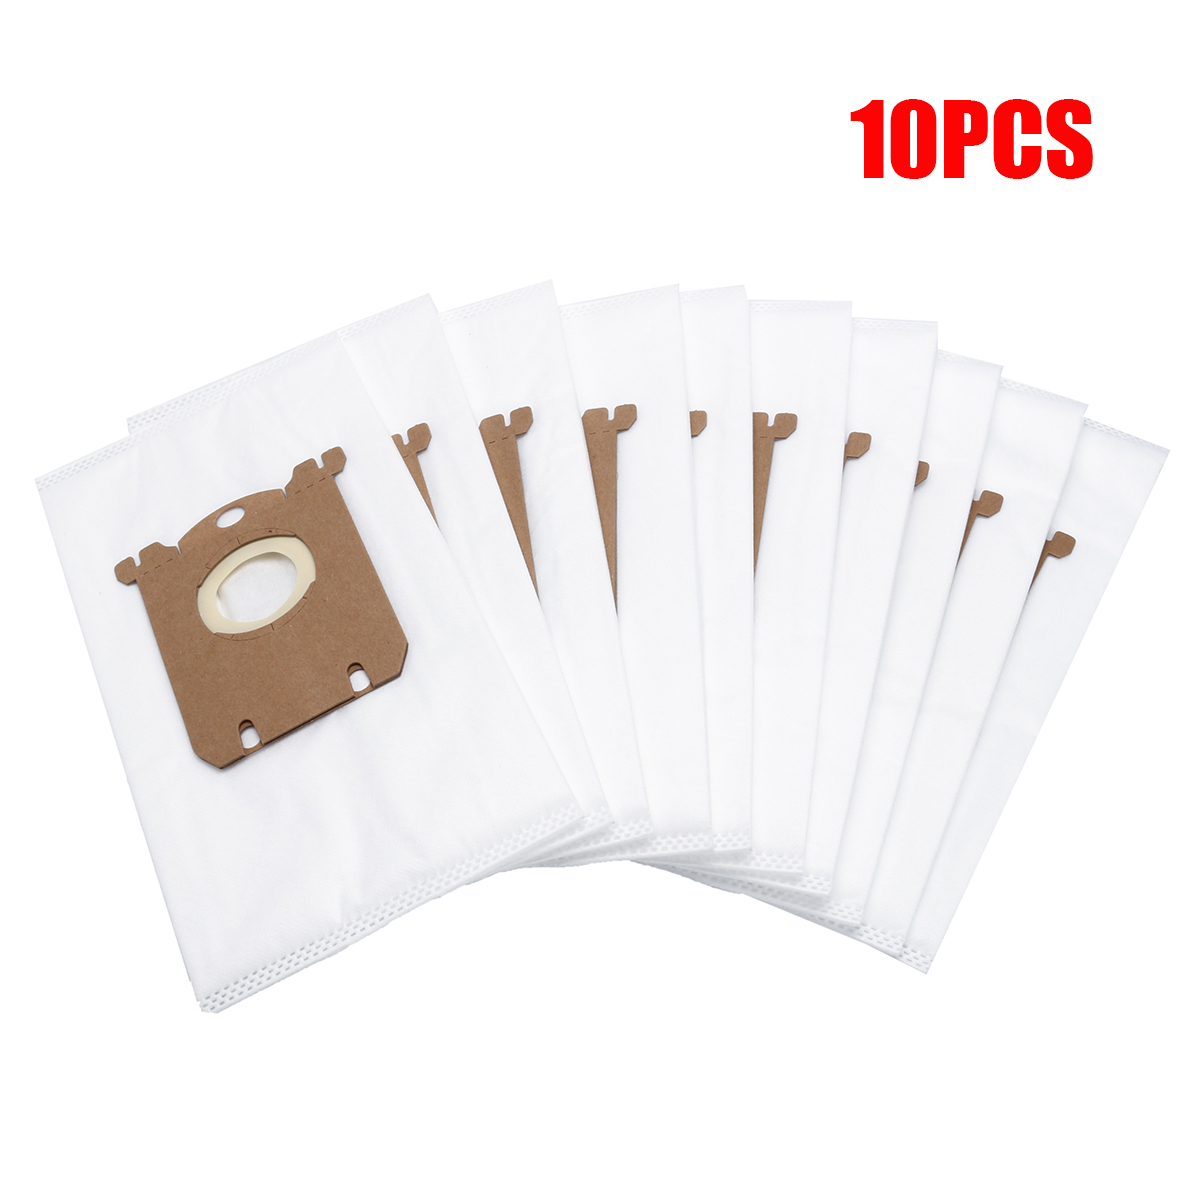 10pcs Vaccum Dust Bags Menlux 1800 For Electrolux Wertheim Volta Phillips